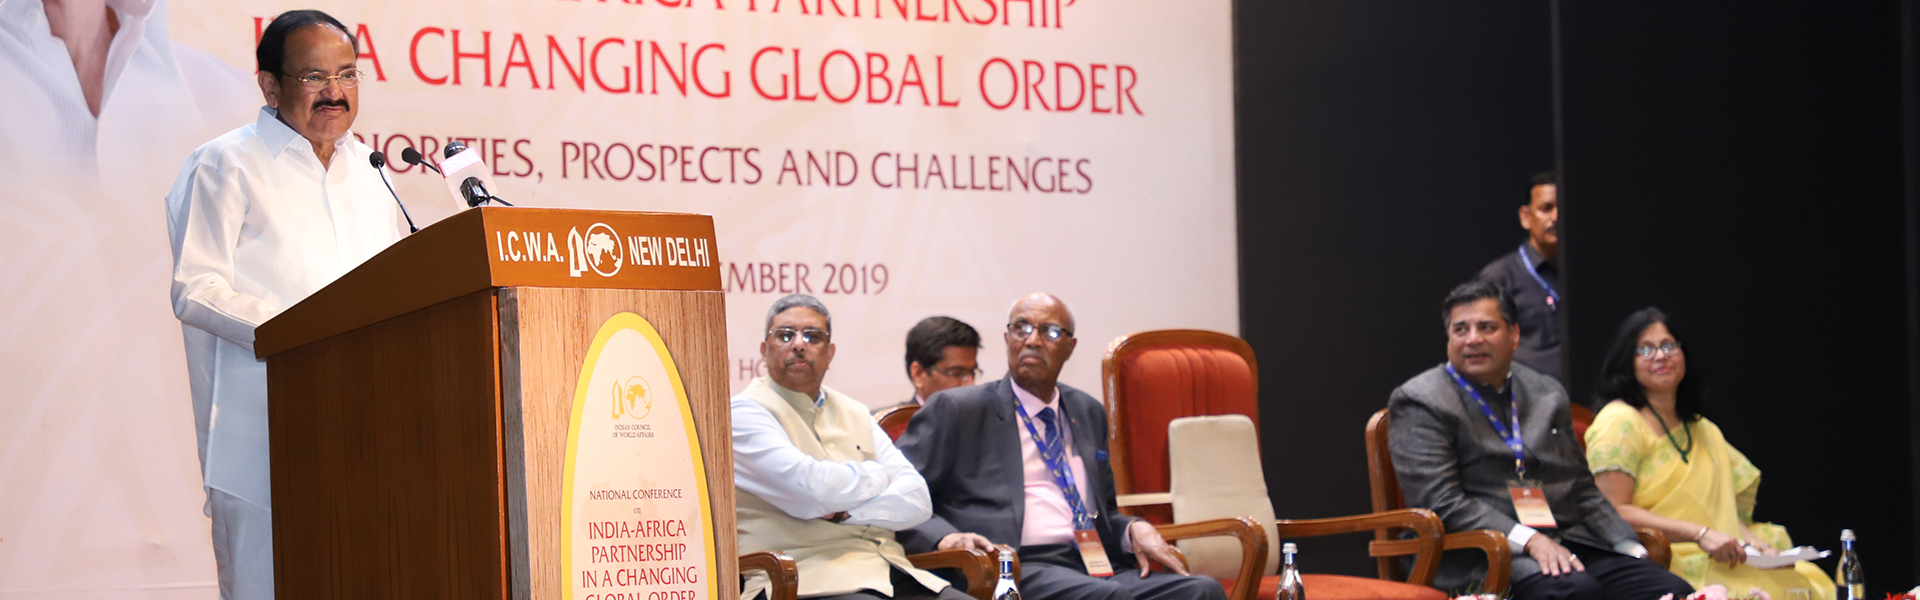 Shri M. Venkaiah Naidu, Hon'ble Vice President of India and President ICWA, delivering the Valedictory Address at National Conference on 'India-Africa Partnership in a Changing Global Order: Priorities, Prospects and Challenges', at Sapru House, 4 September 2019.